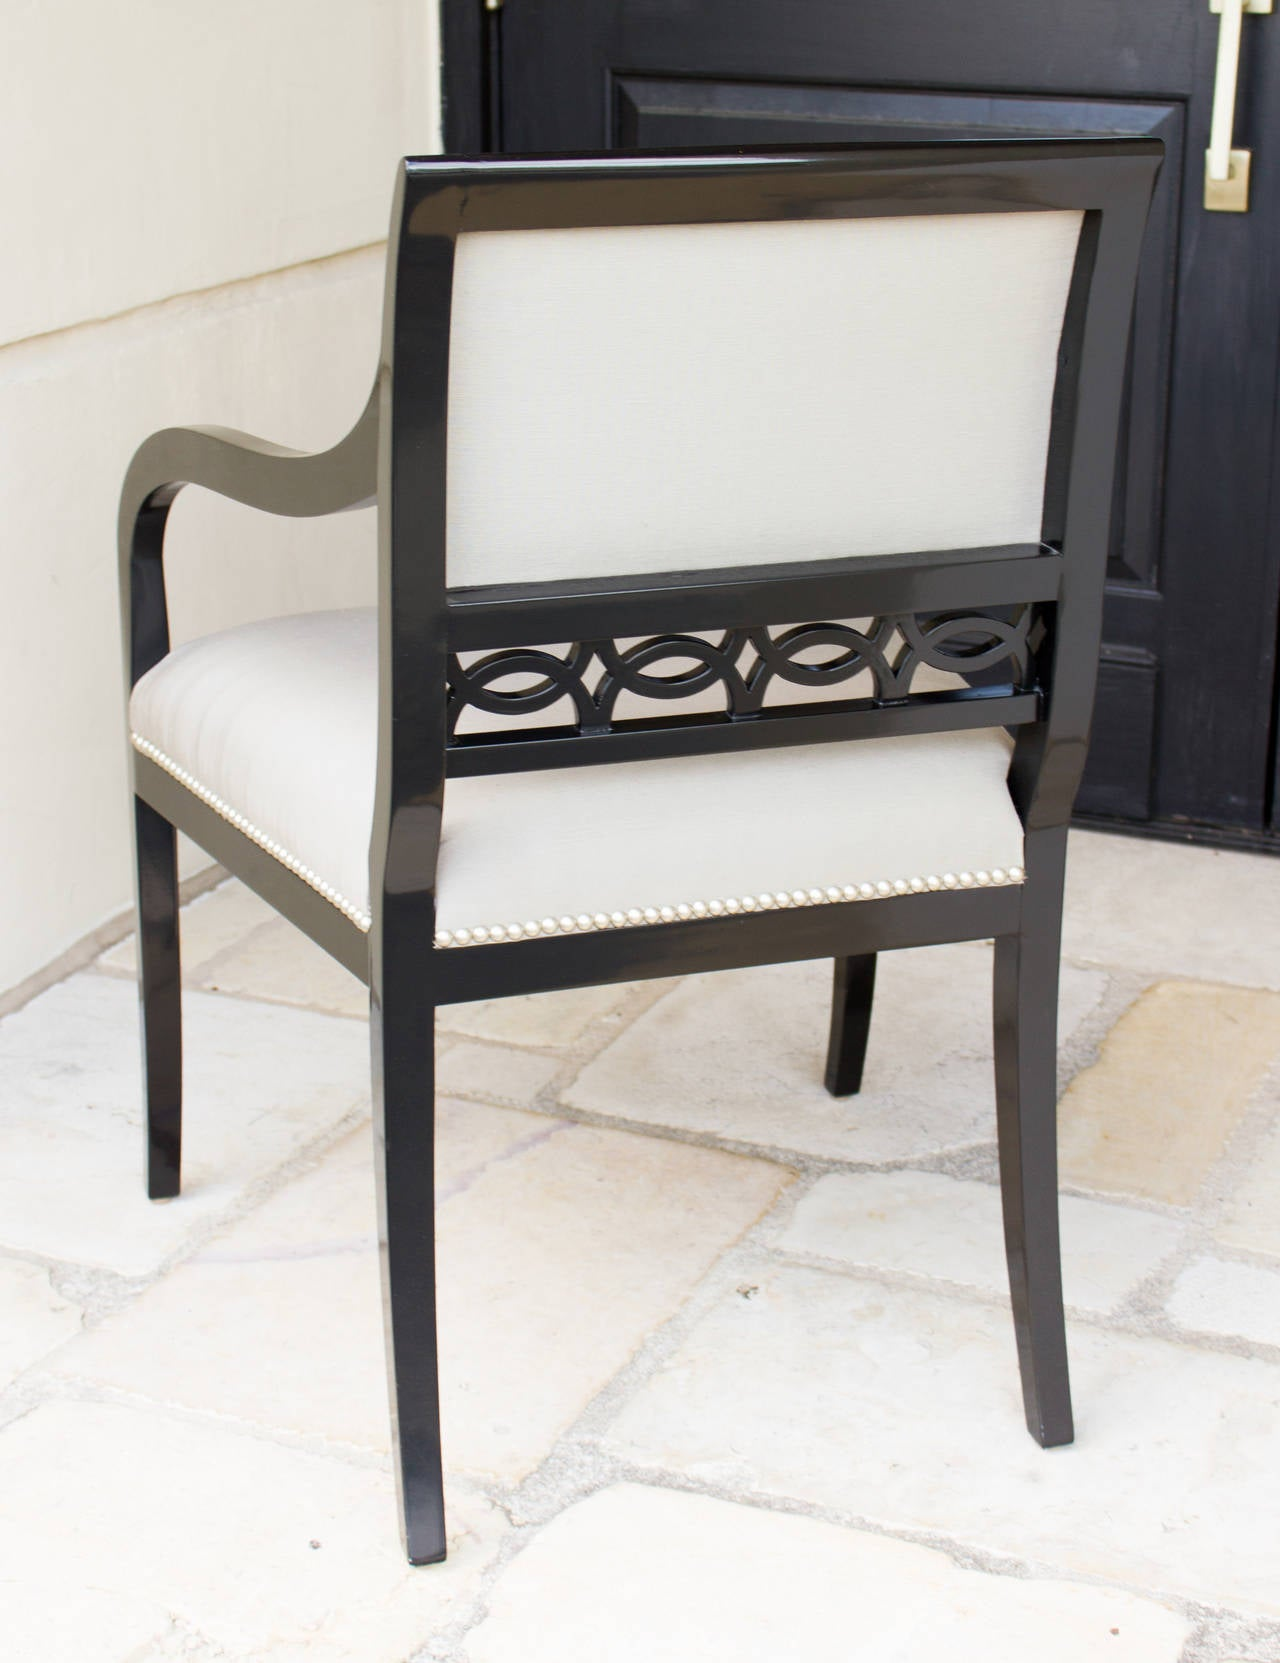 Black lacquer studded.